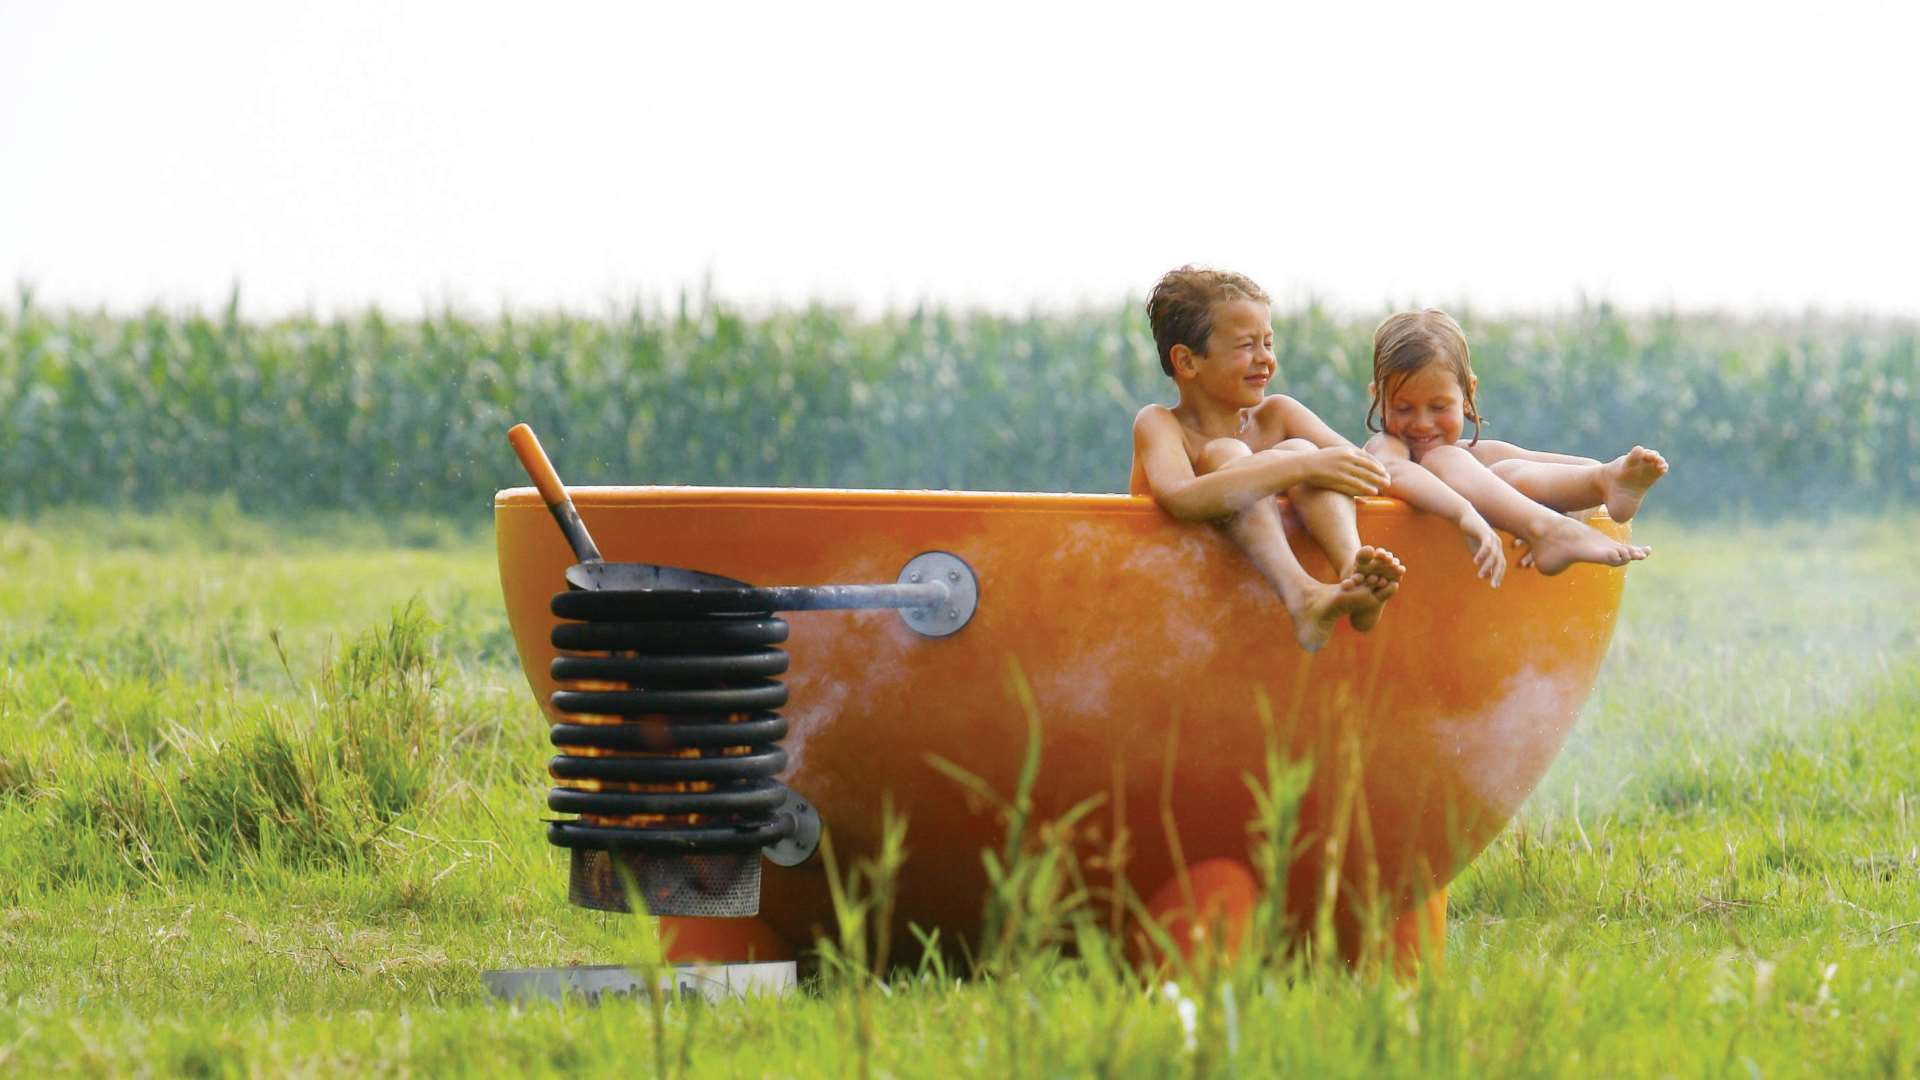 hot tubs by weltevree an orange wood fire hot tub with children in a field with corn stalks in the background